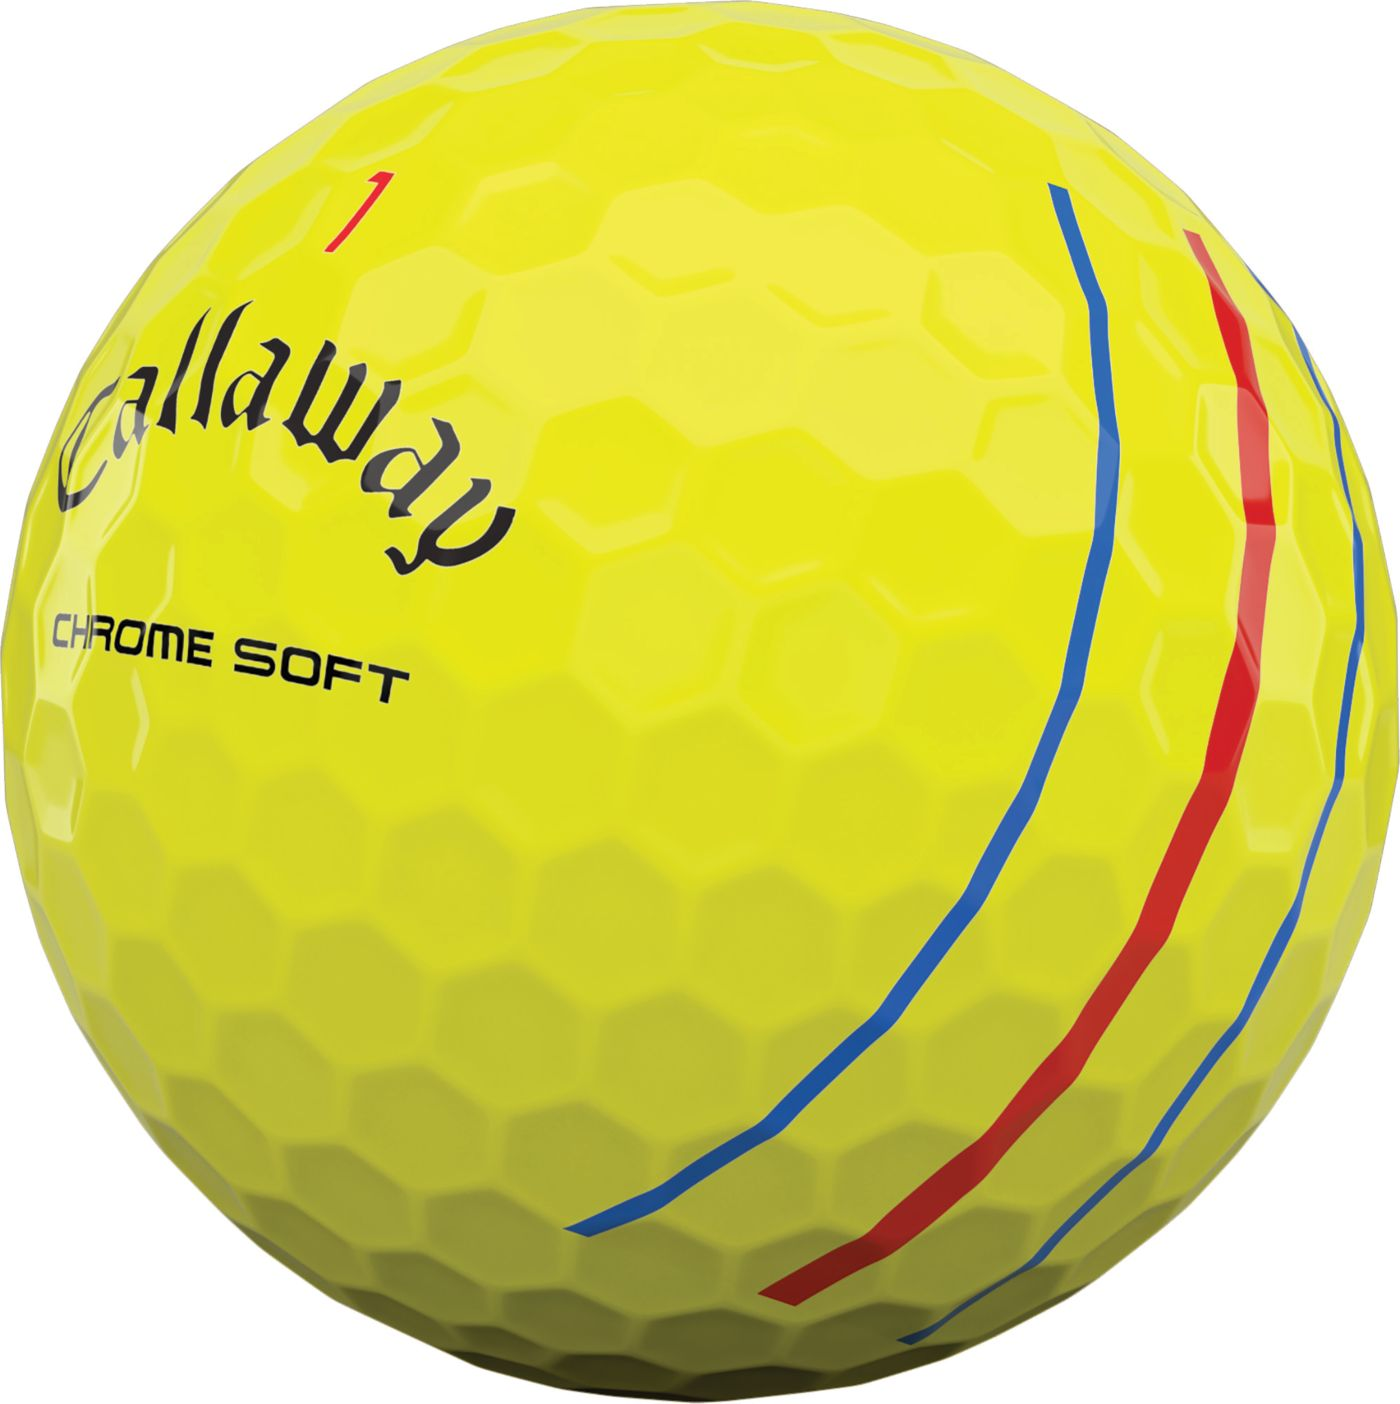 Callaway 2020 Chrome Soft Triple Track Yellow Personalized Golf Balls